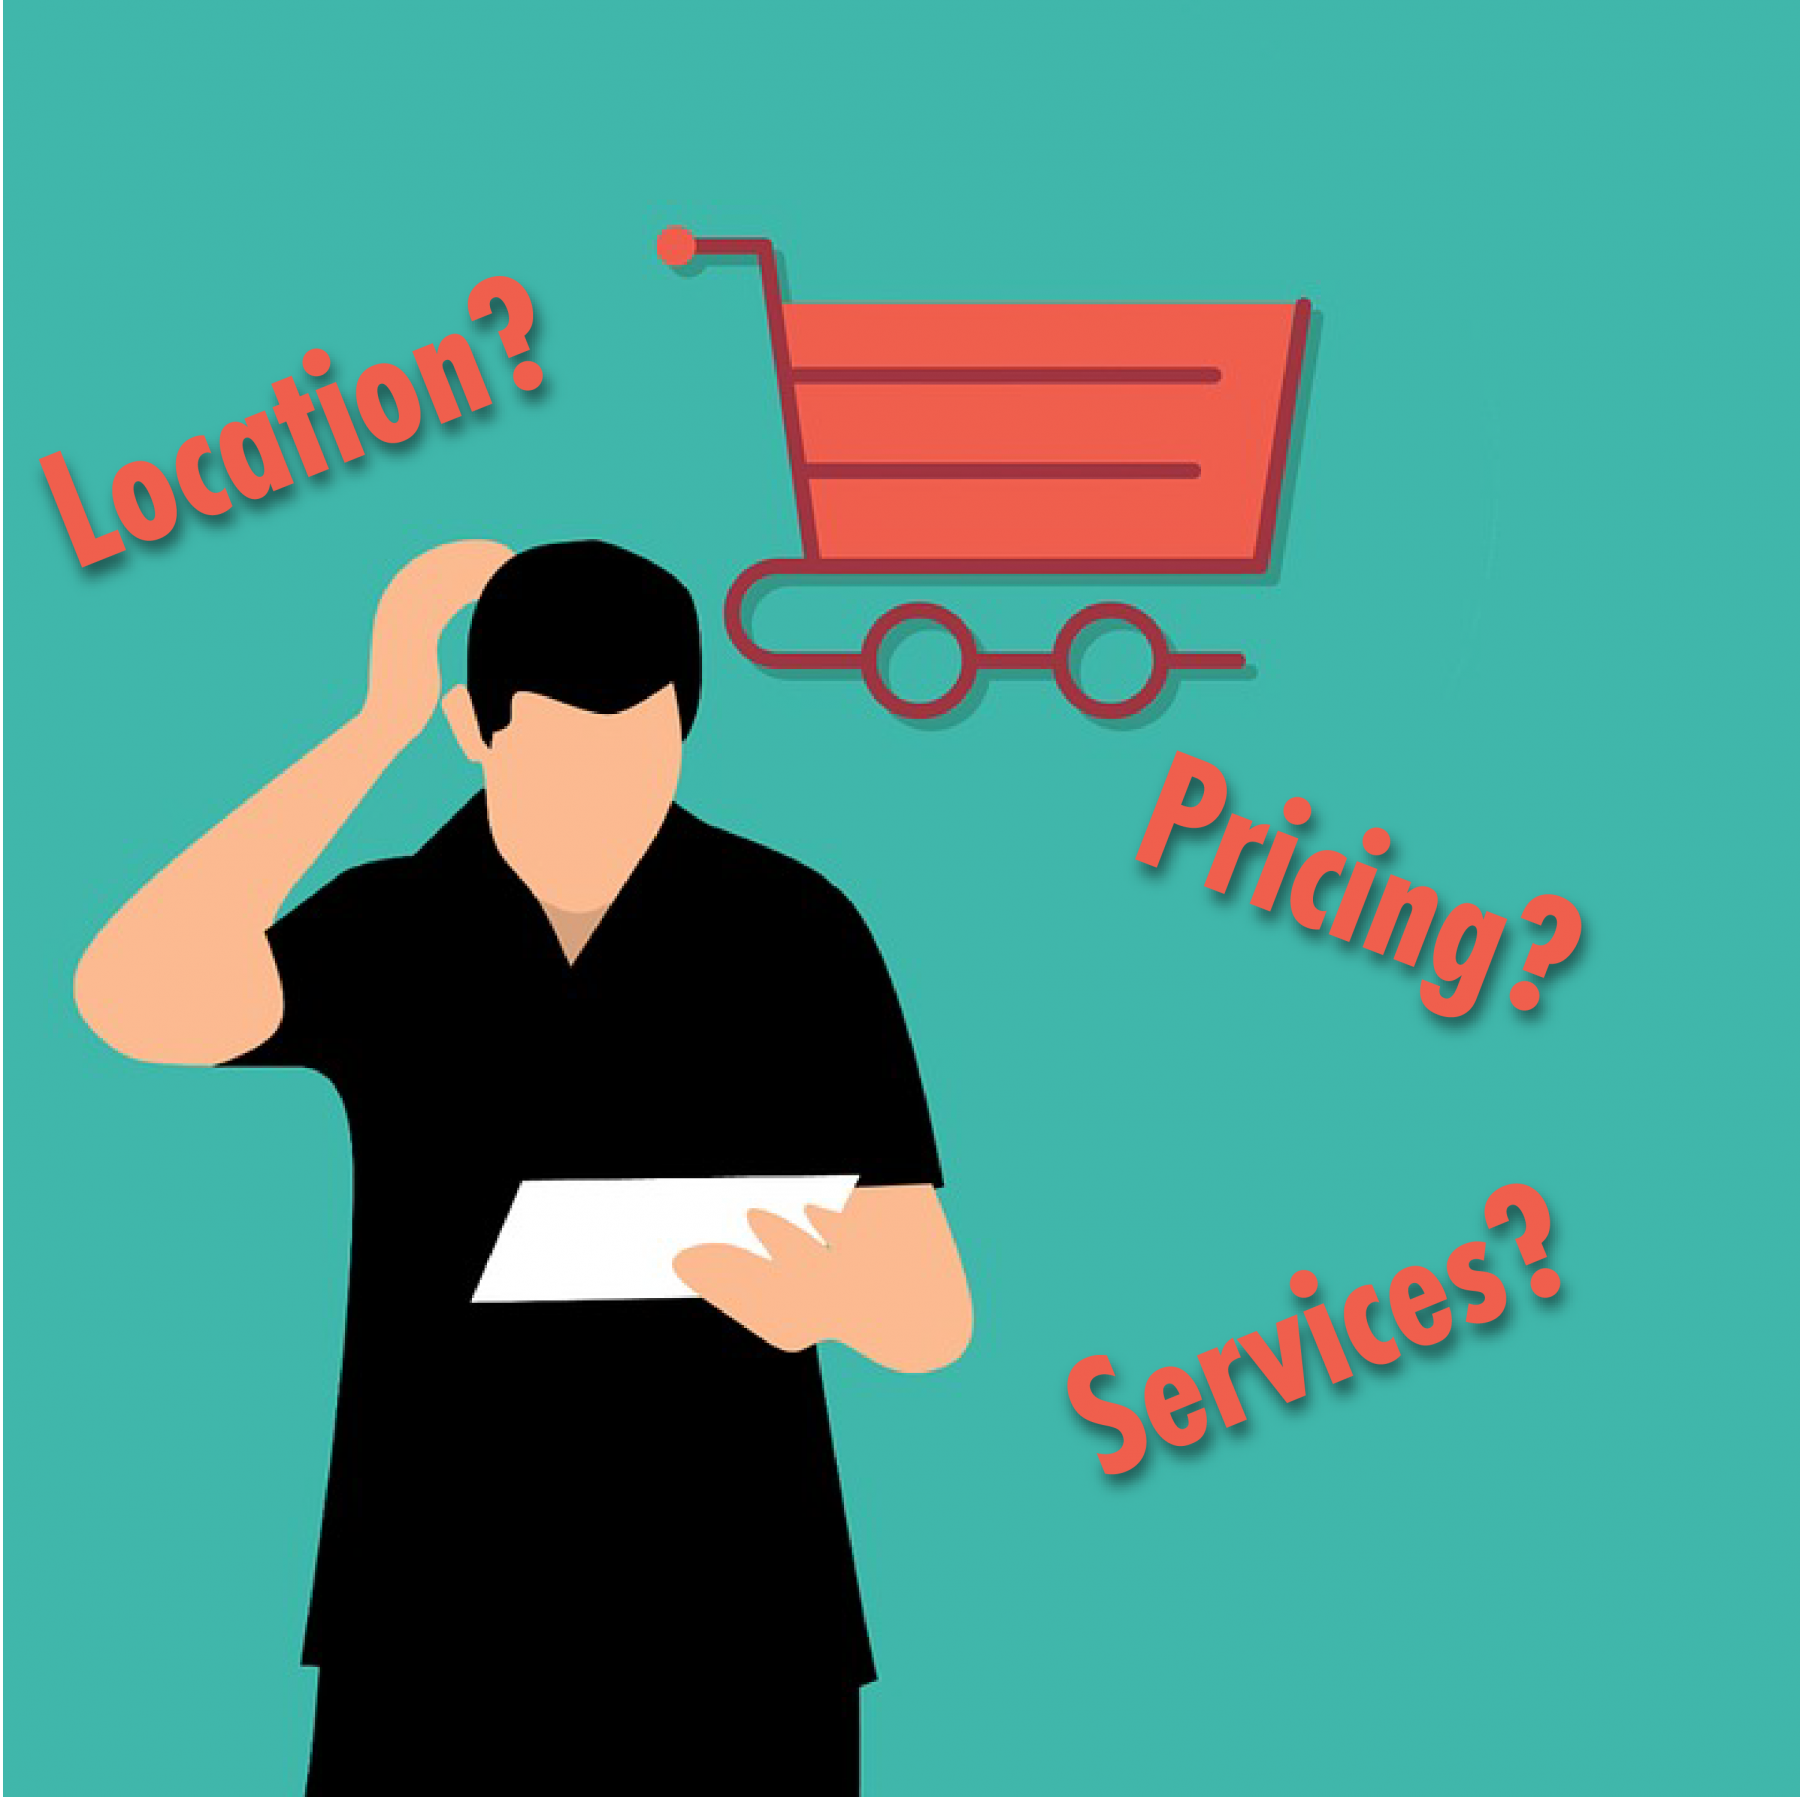 Help! What should I take into consideration when selecting a warehousing partner?